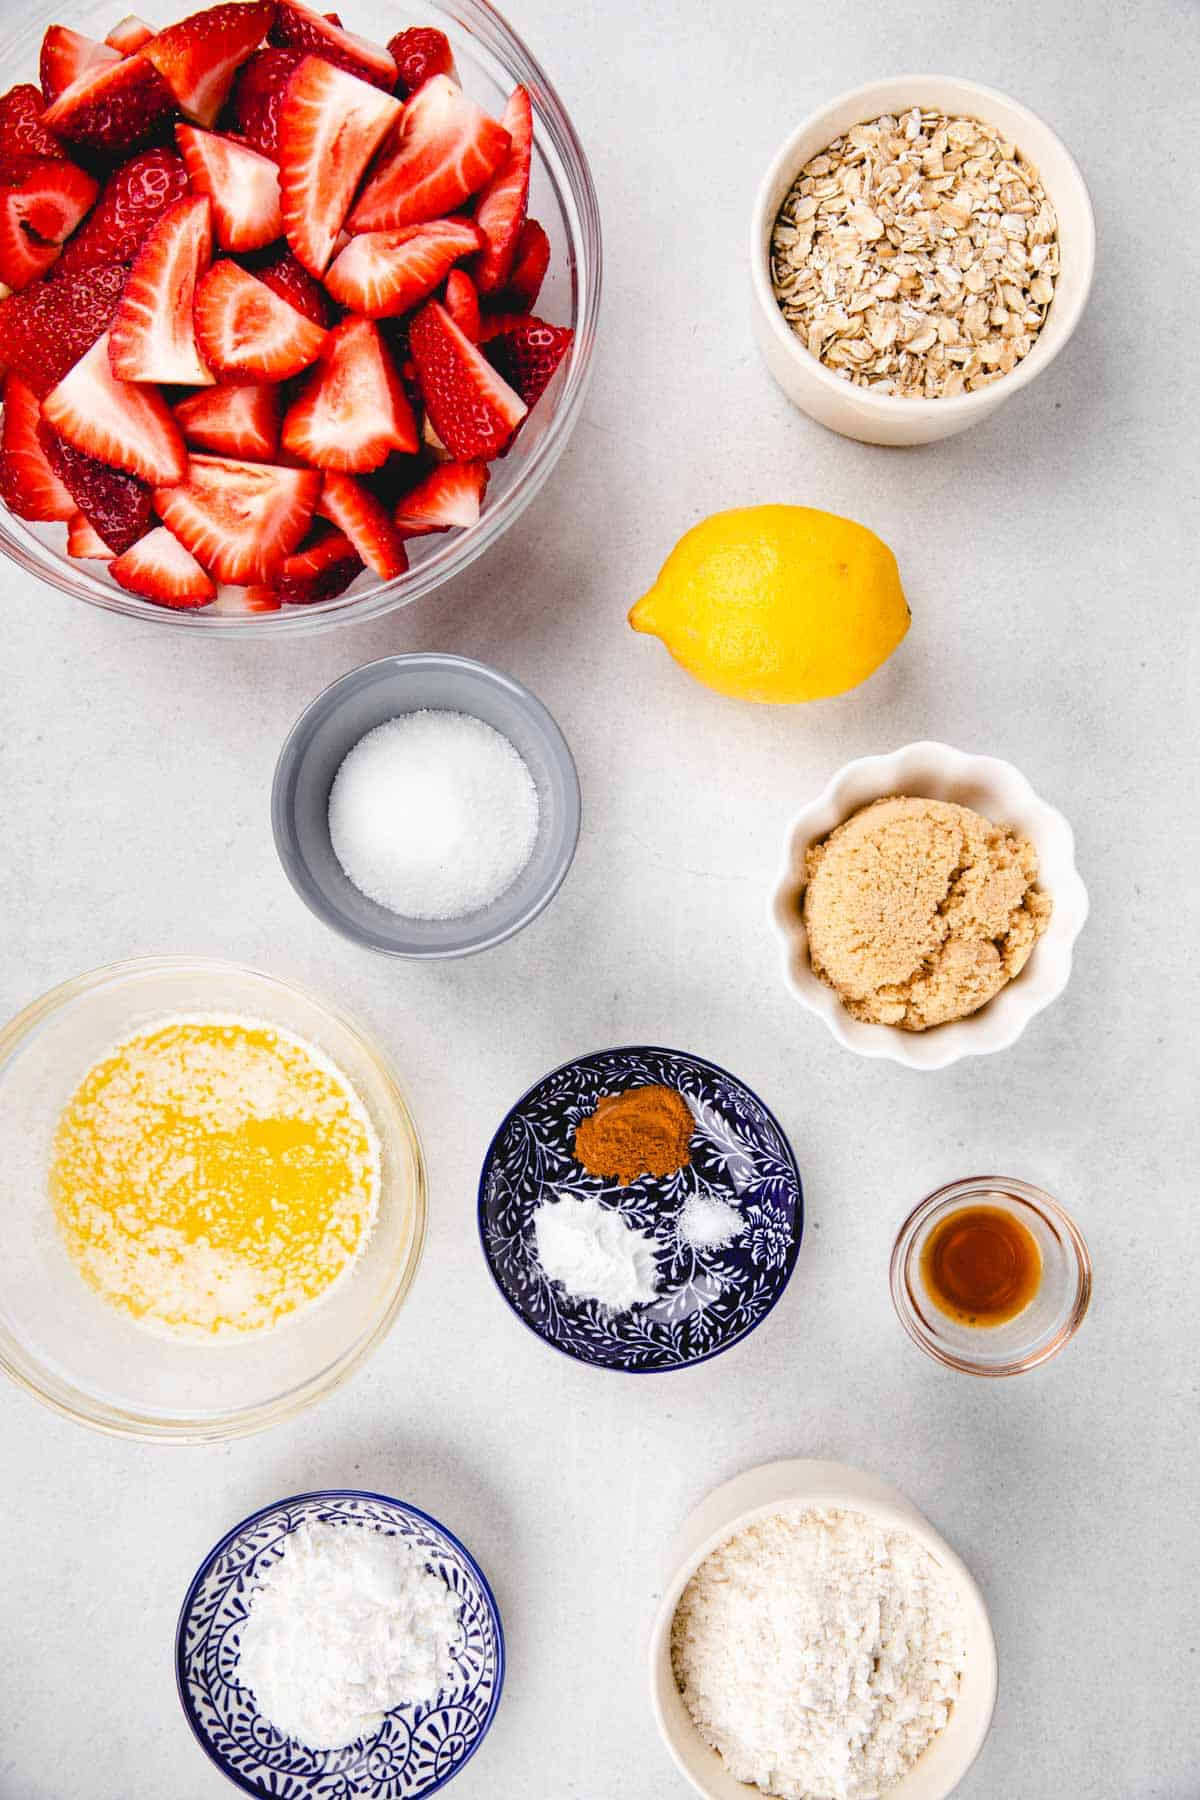 Ingredients in separate bowl for strawberry crumble.